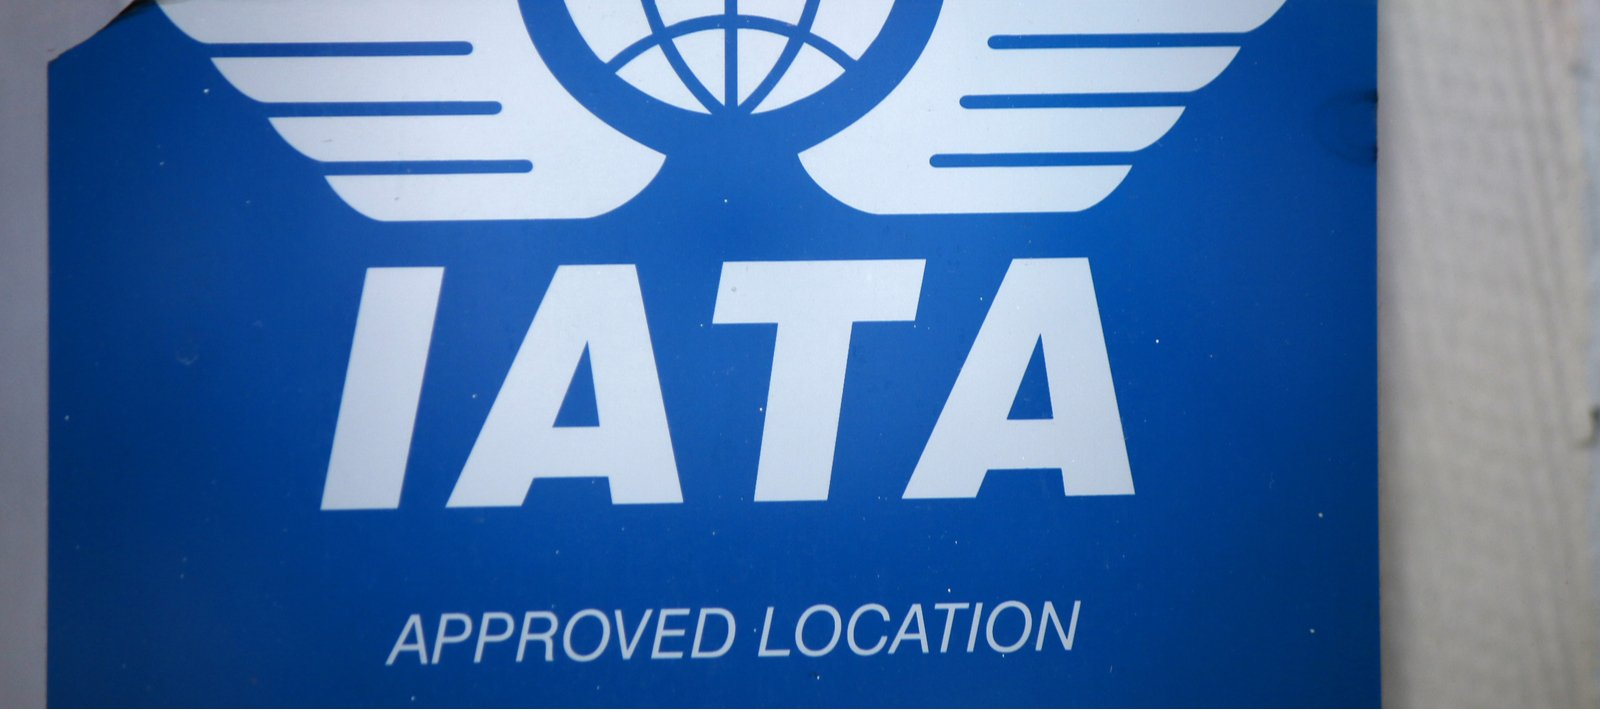 IATA_featured